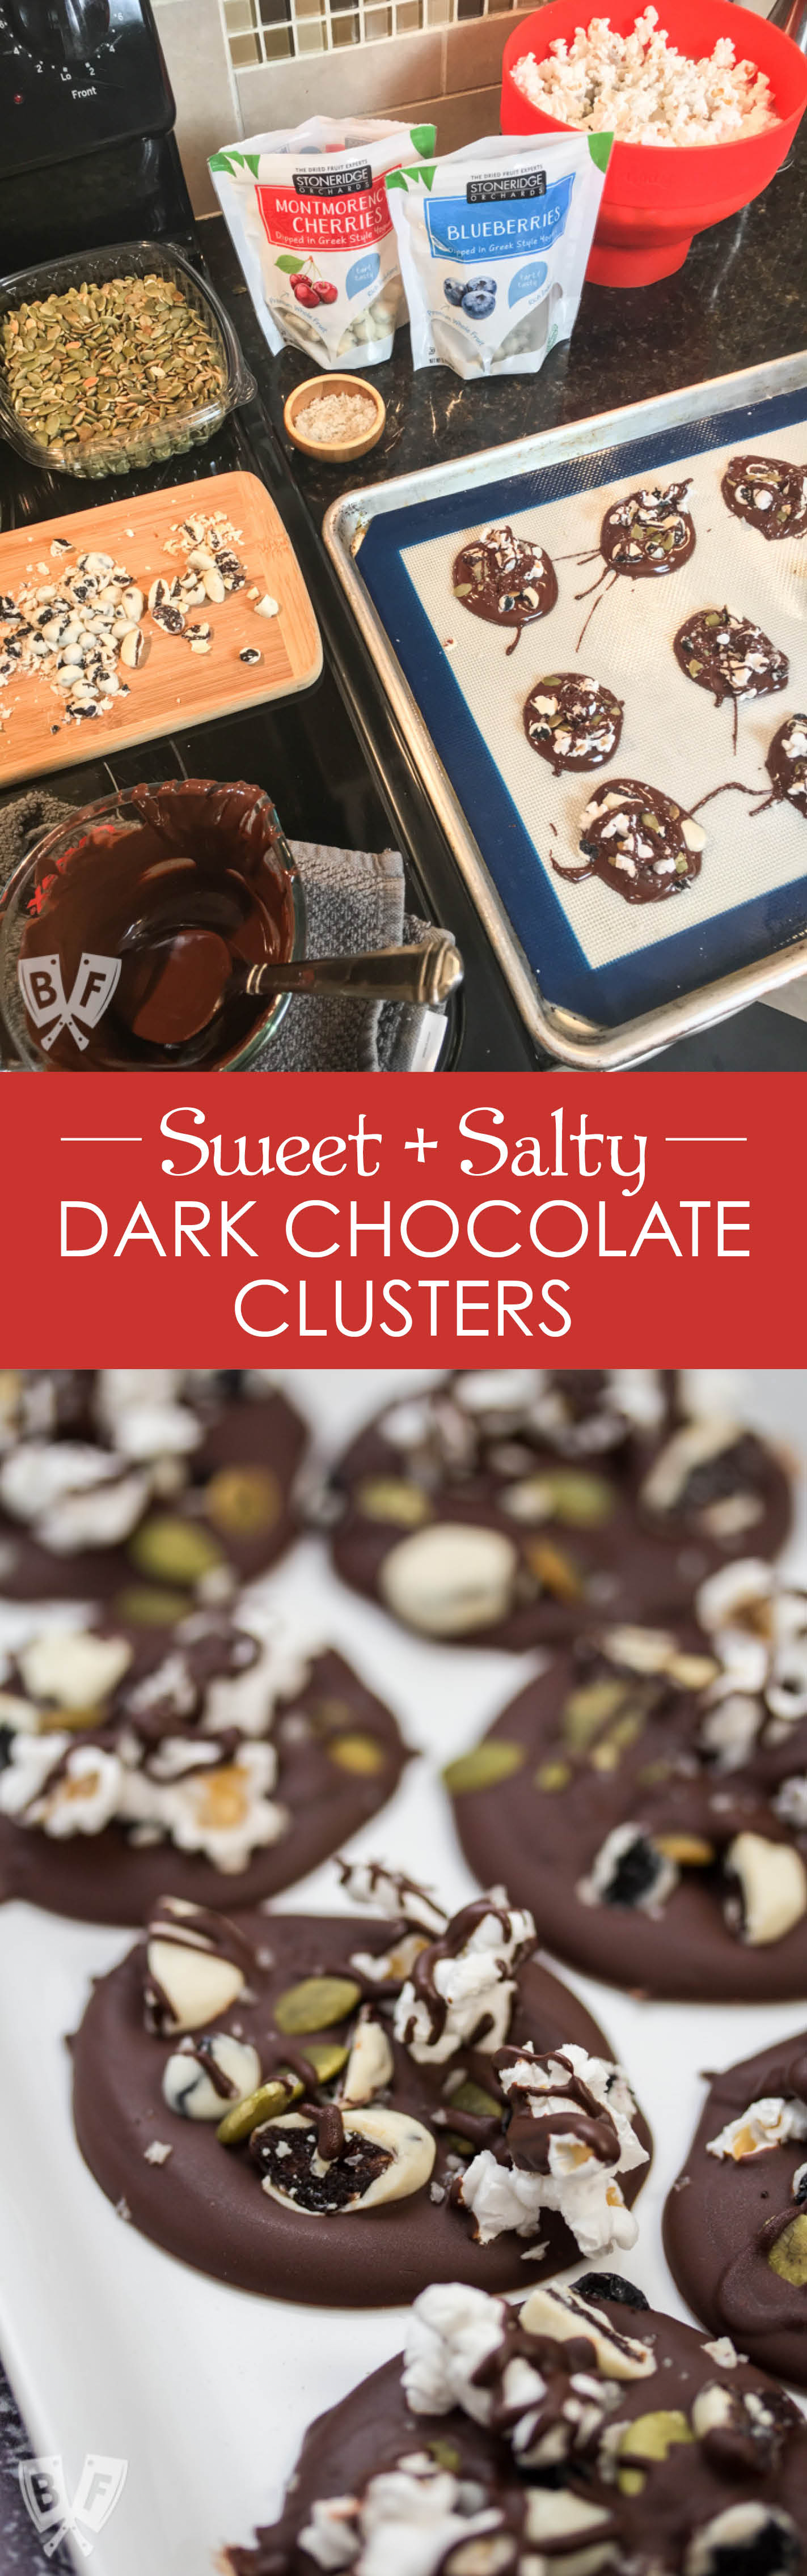 Sweet + Salty Dark Chocolate Clusters: #ad Satisfy your sweet tooth with this 5 ingredient dark chocolate dessert. These Sweet + Salty Dark Chocolate Clusters are easy to make, no bake, & perfect for times when you're craving both sweet AND salty!